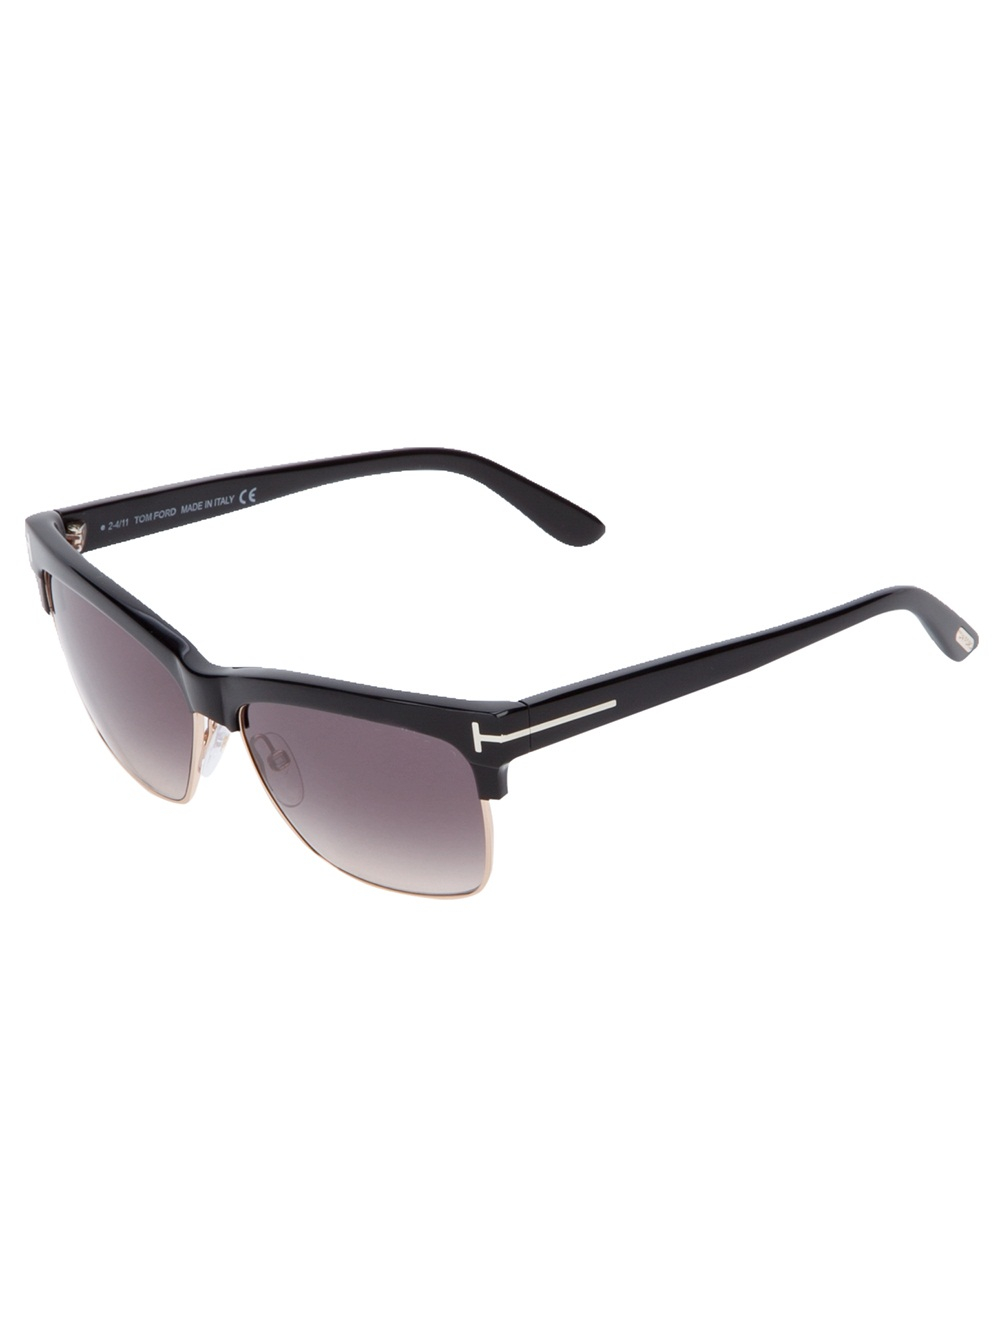 c7d87ad158d Lyst - Tom Ford Montgomery Sunglass in Black for Men